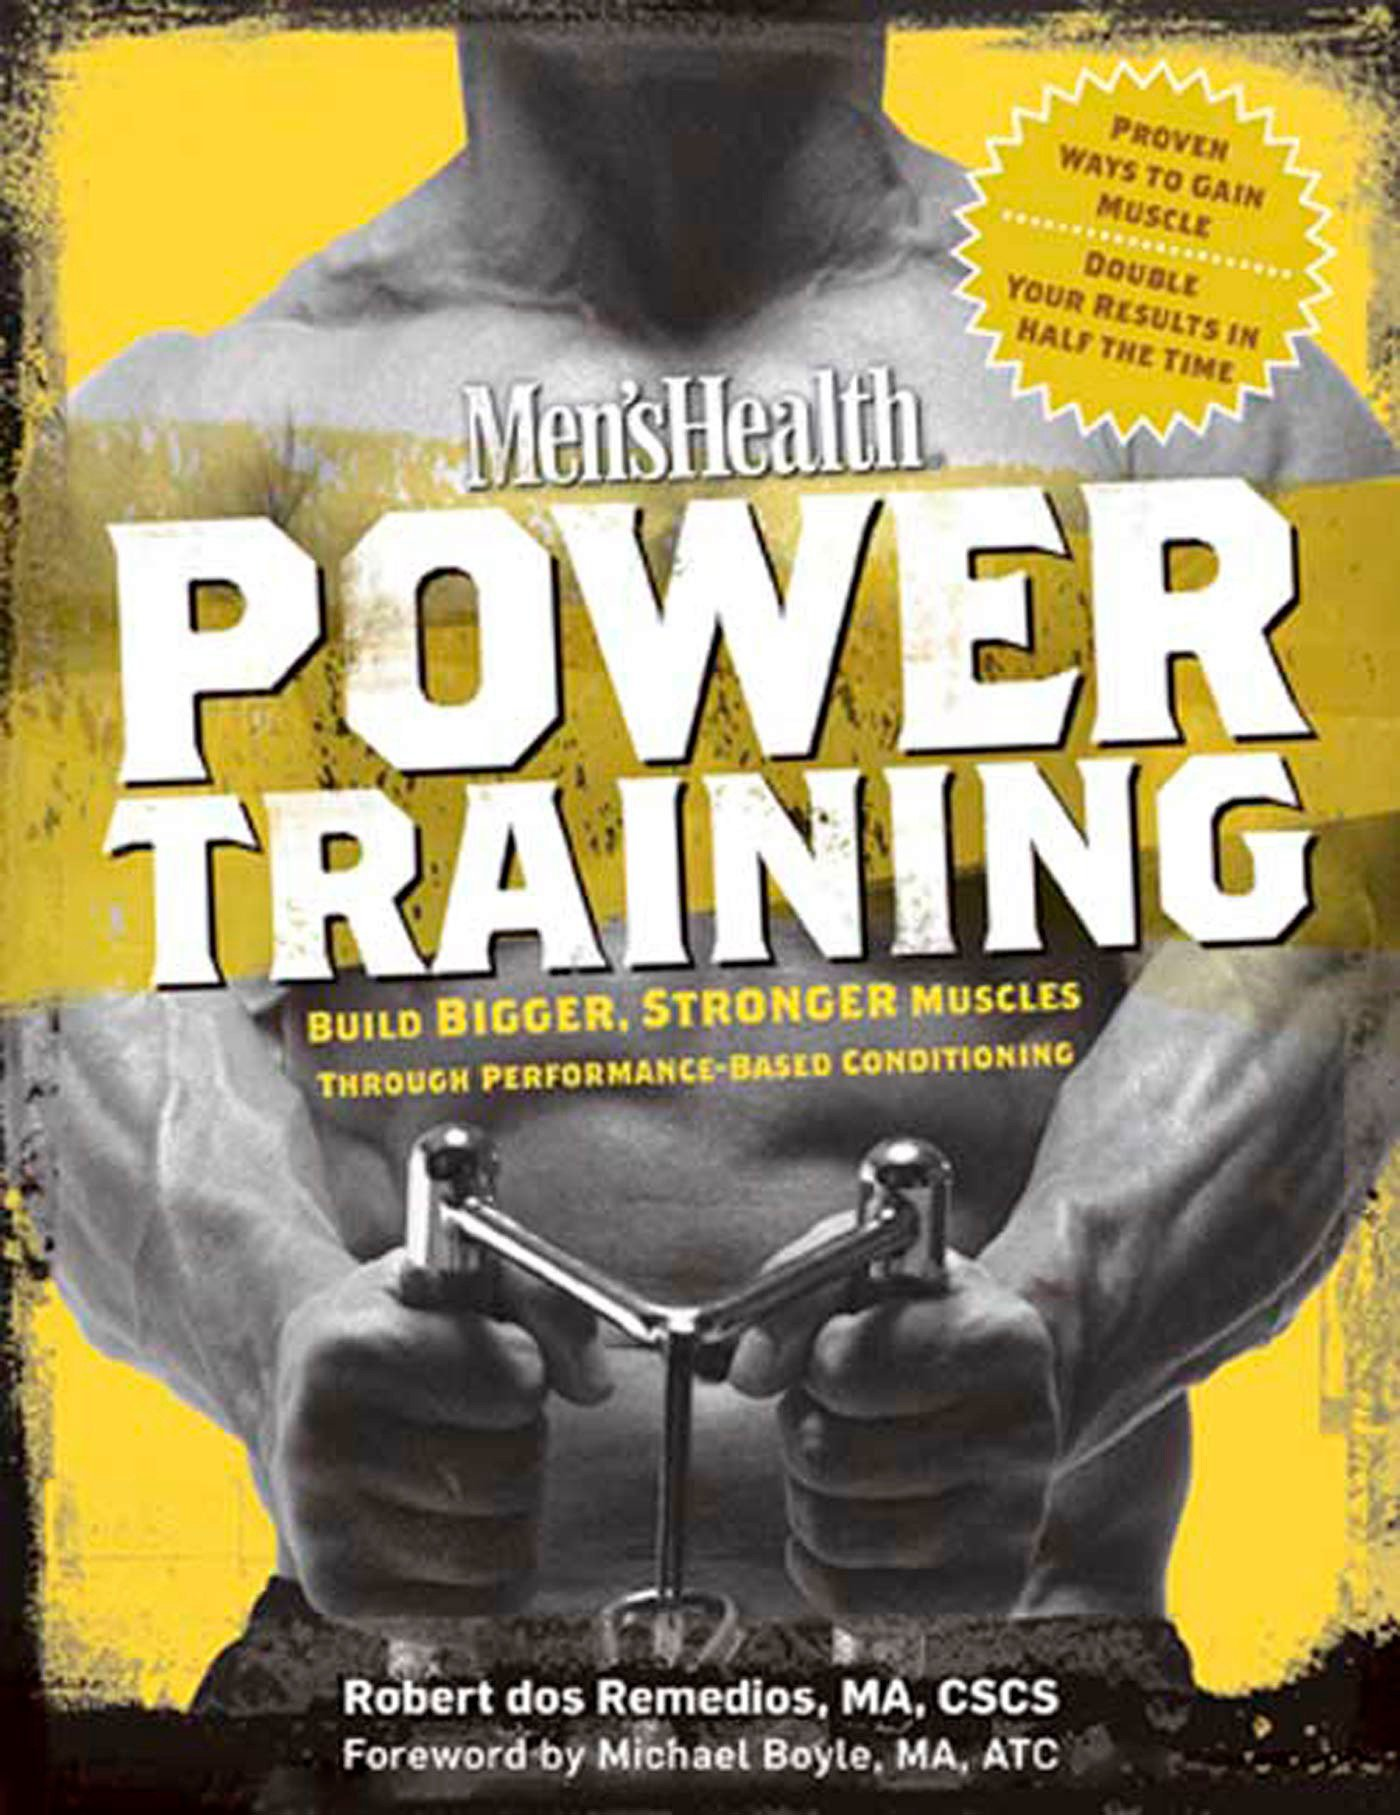 Men's Health Power Training: Build Bigger, Stronger Muscles Through Performance-Based Conditioning: Book of Strength